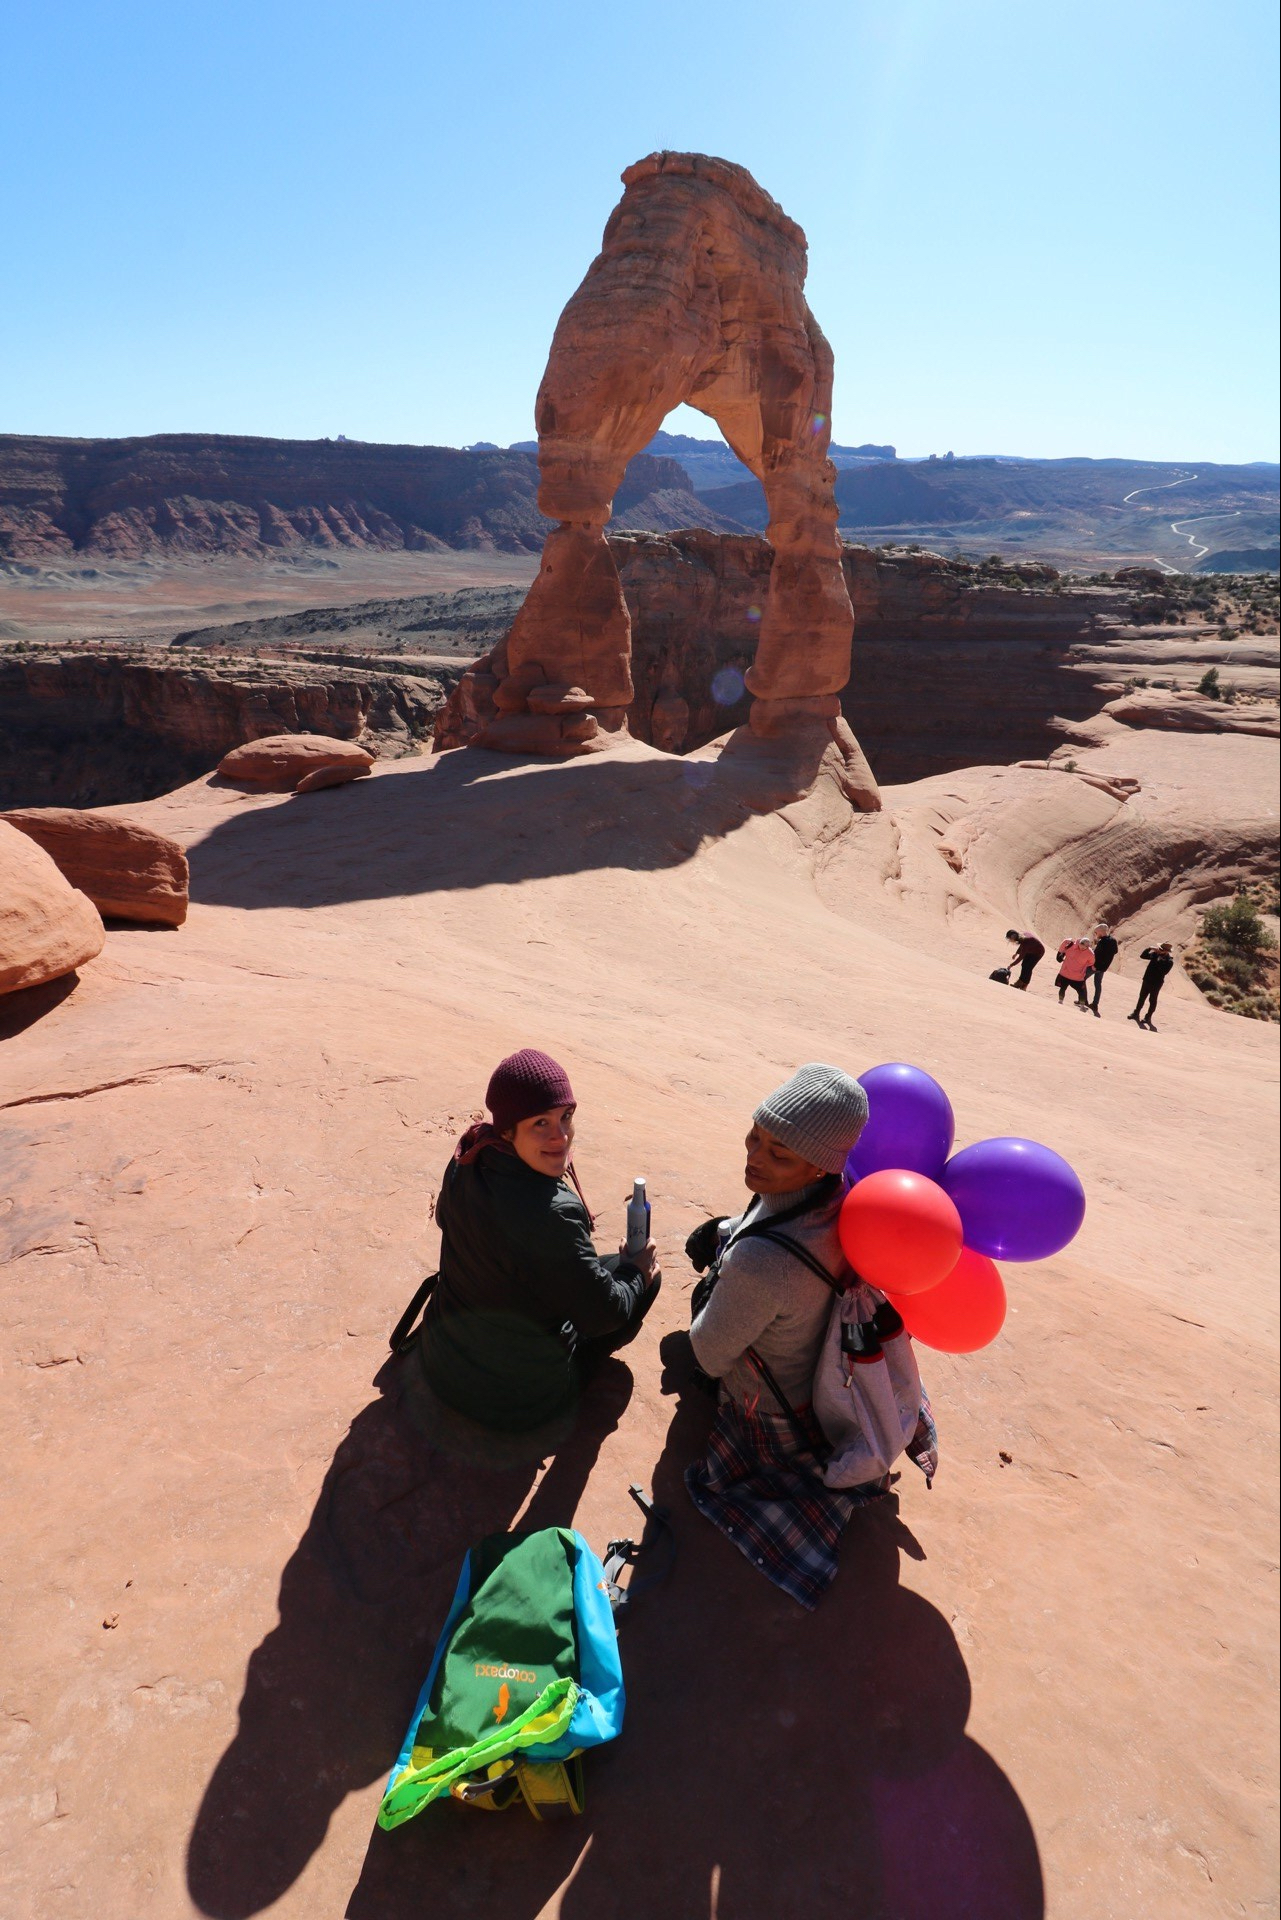 Illustrated by Sade - Having a cold beer in front of the Delicate Arch